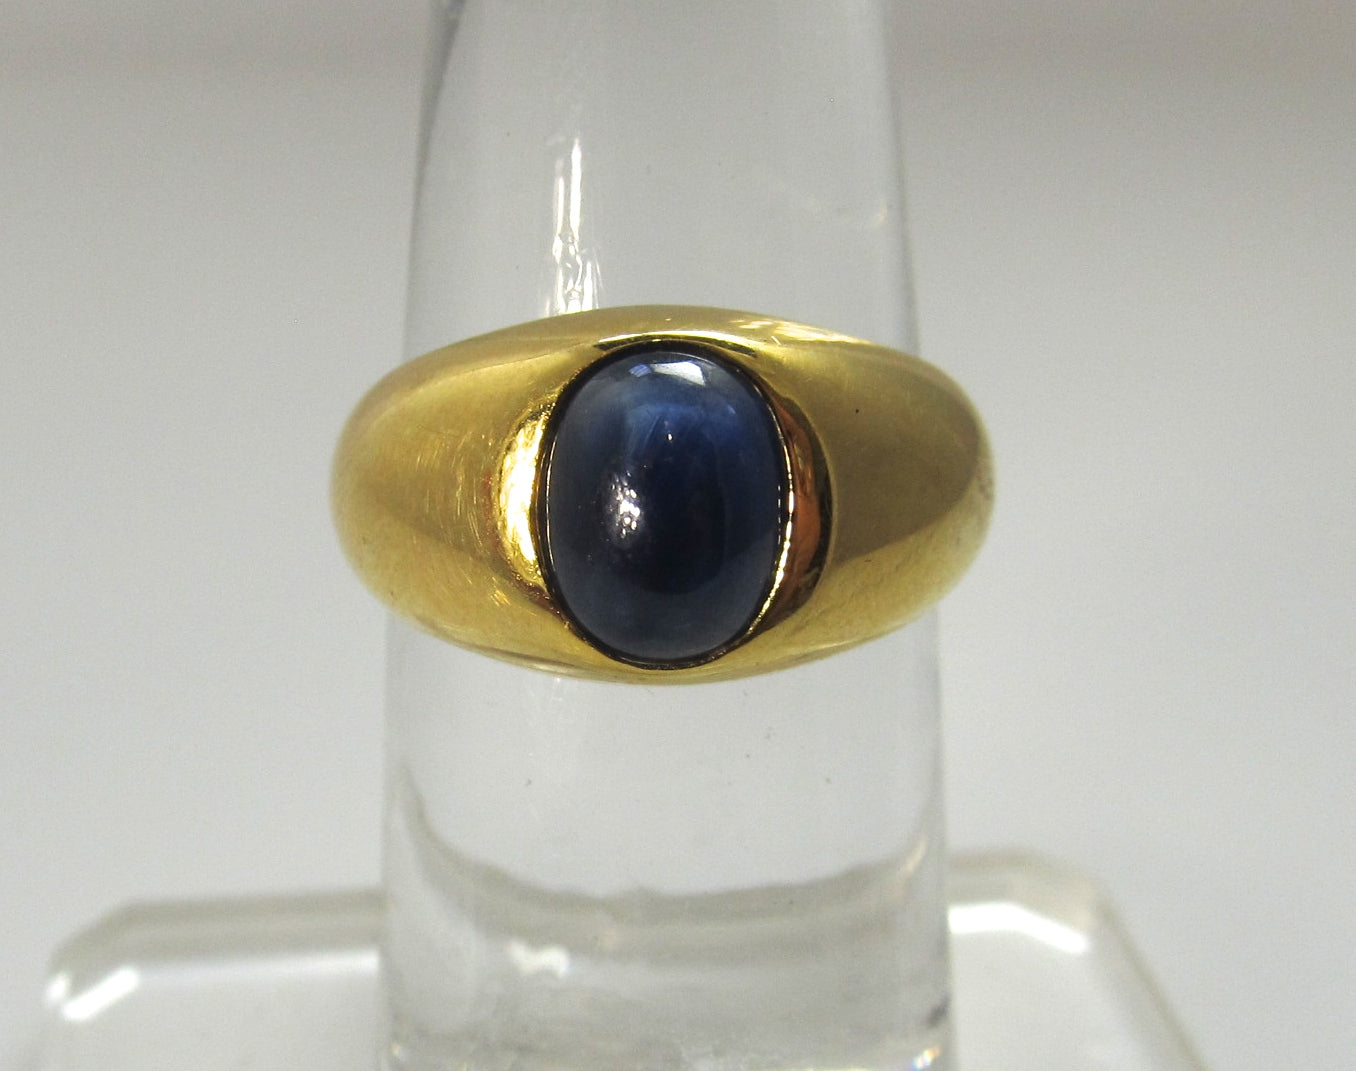 18k yellow gold 1ct cabochon cut sapphire ring